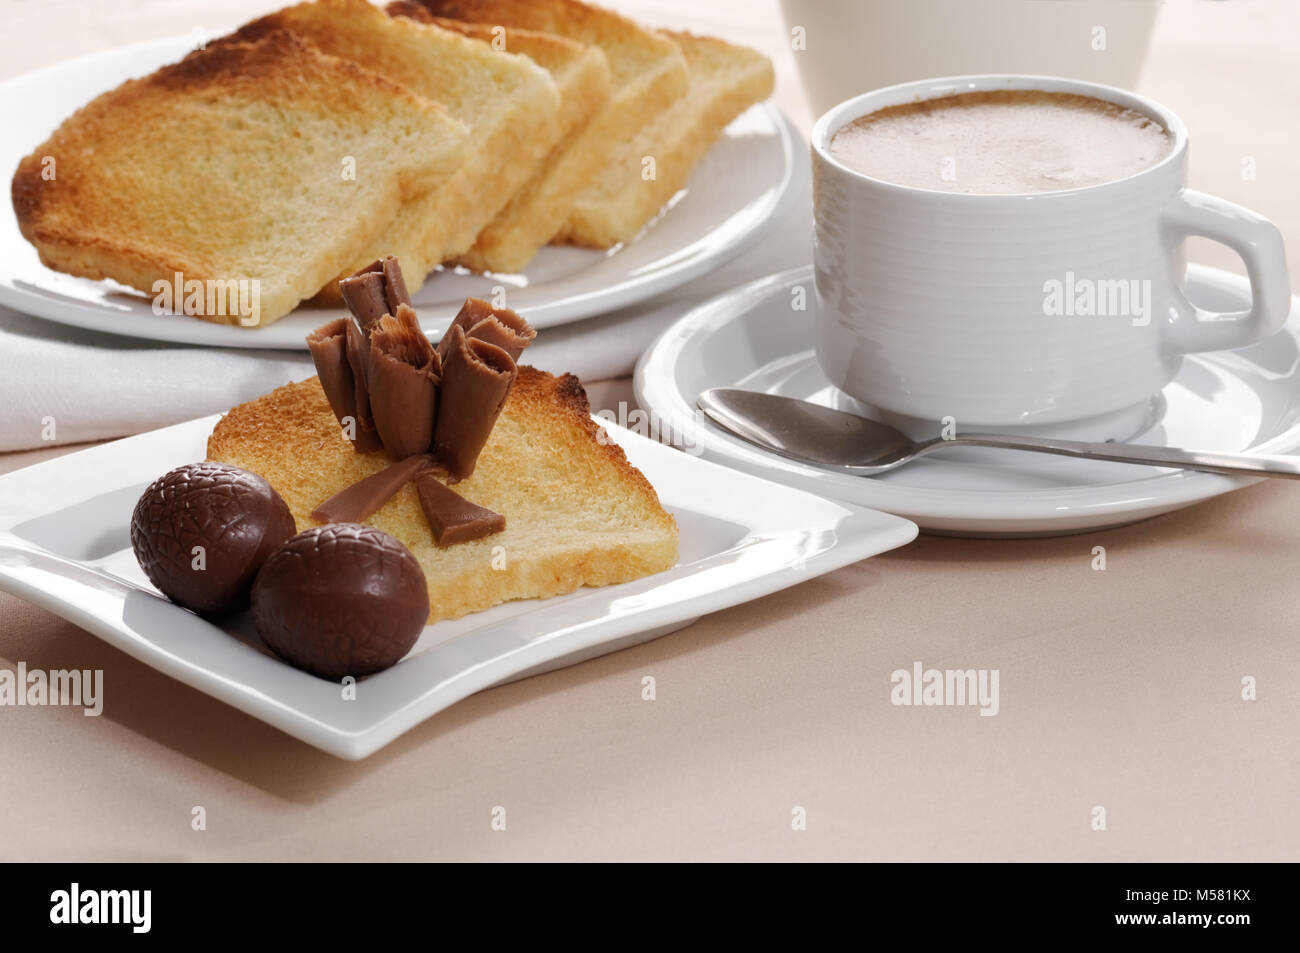 Breakfast with black coffee, toasts, and chocolate - Stock Image